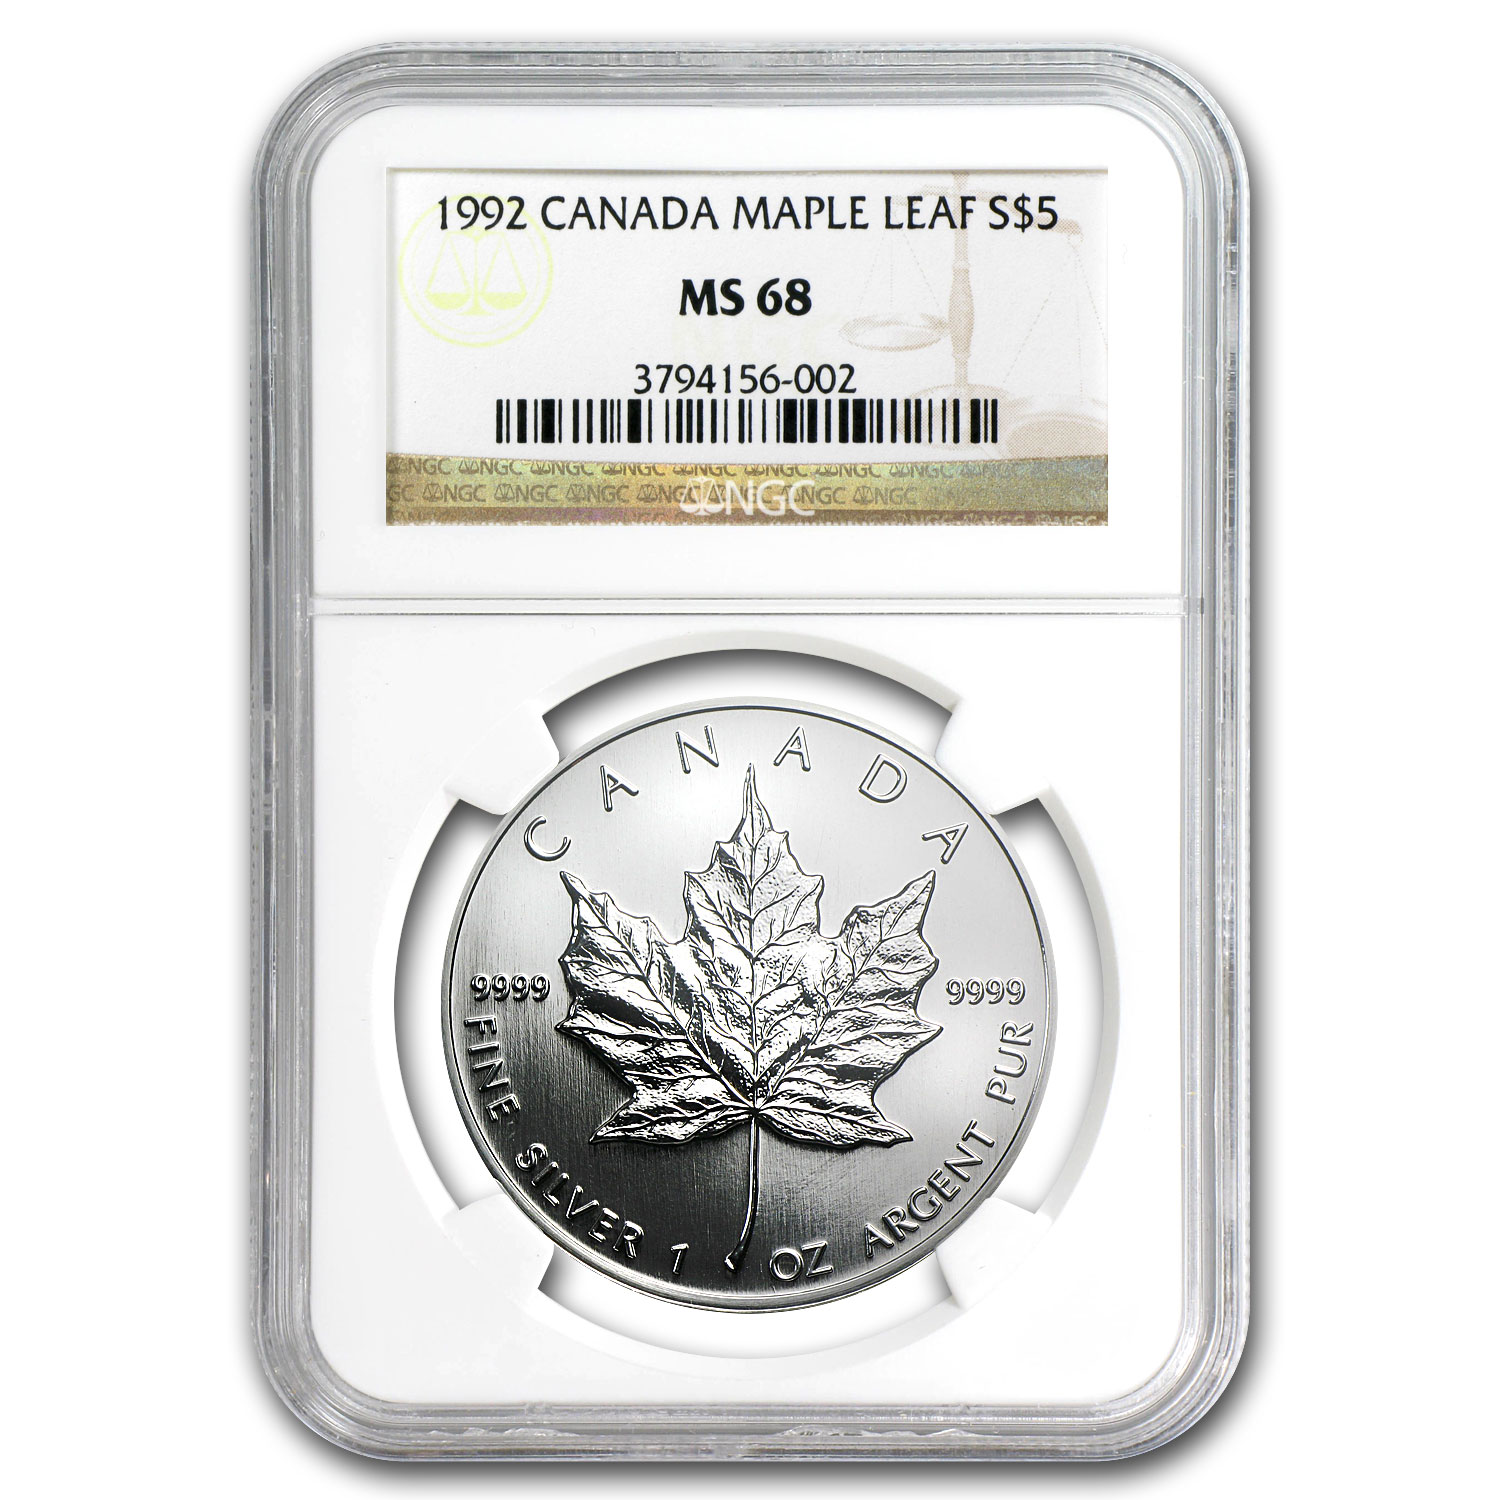 1992 1 oz Silver Canadian Maple Leaf MS-68 NGC